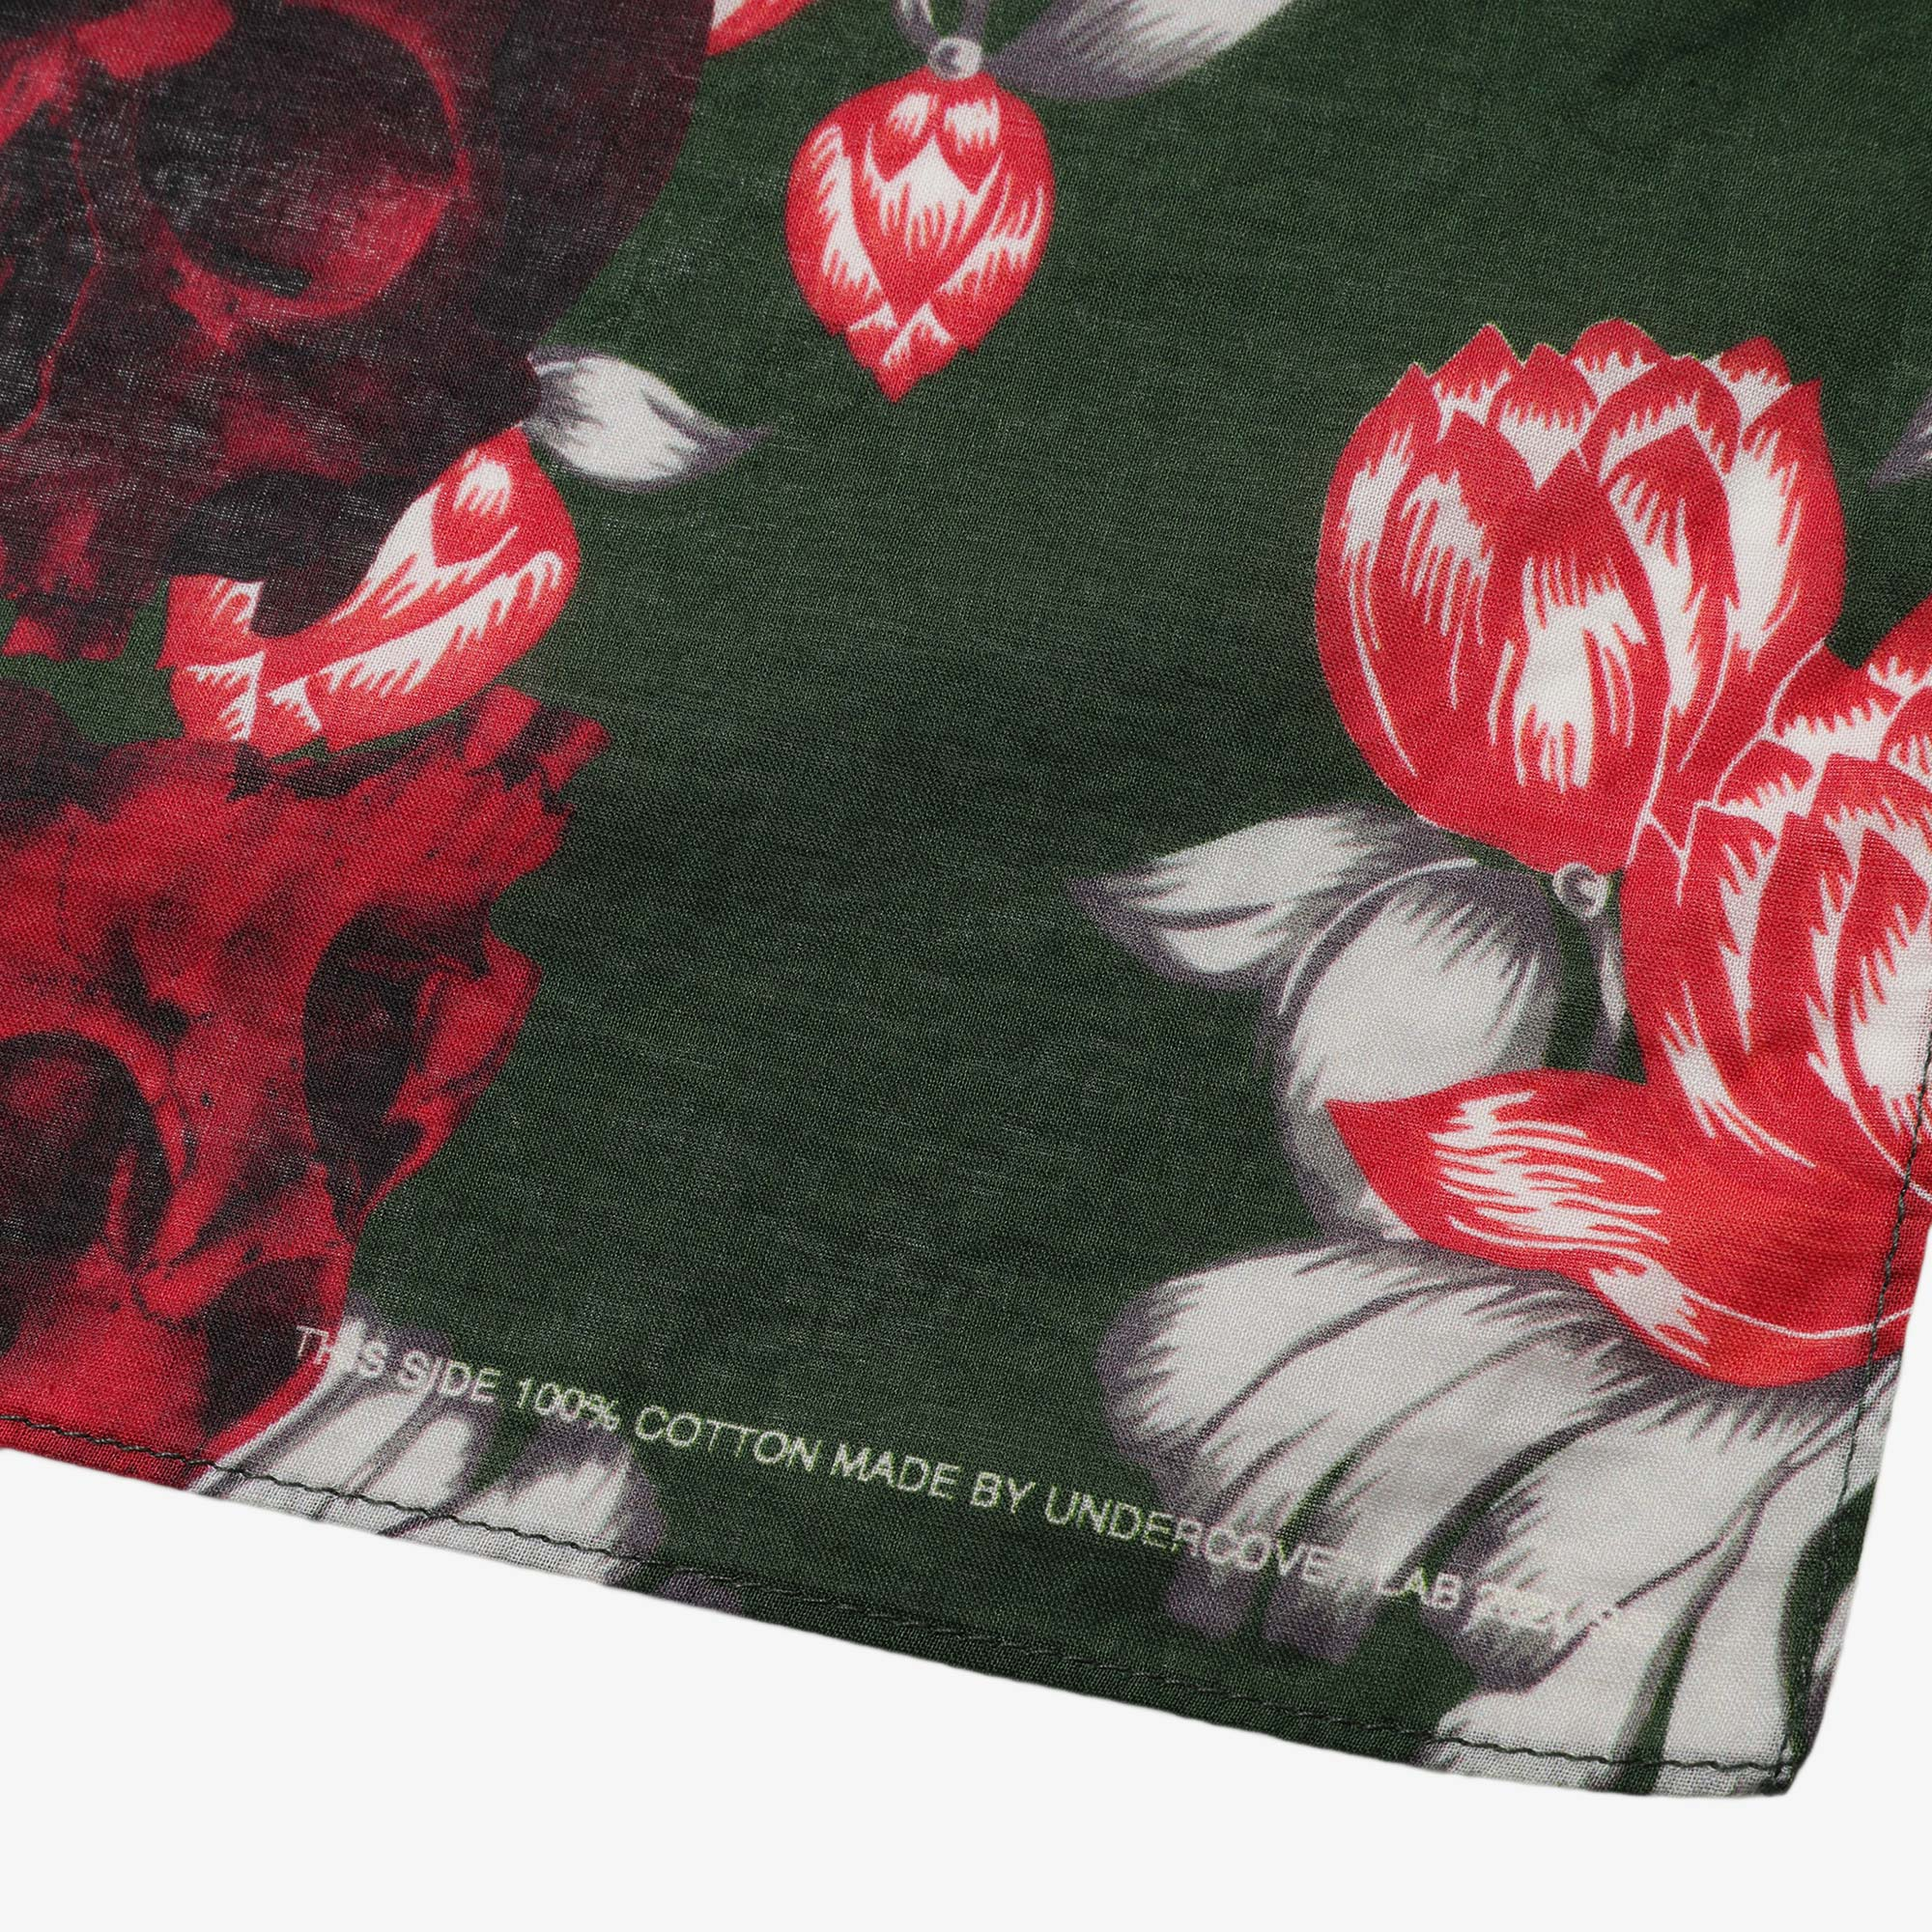 Undercover Roses Skull Pocket Square UC1A4M01-3 - Green Base 2